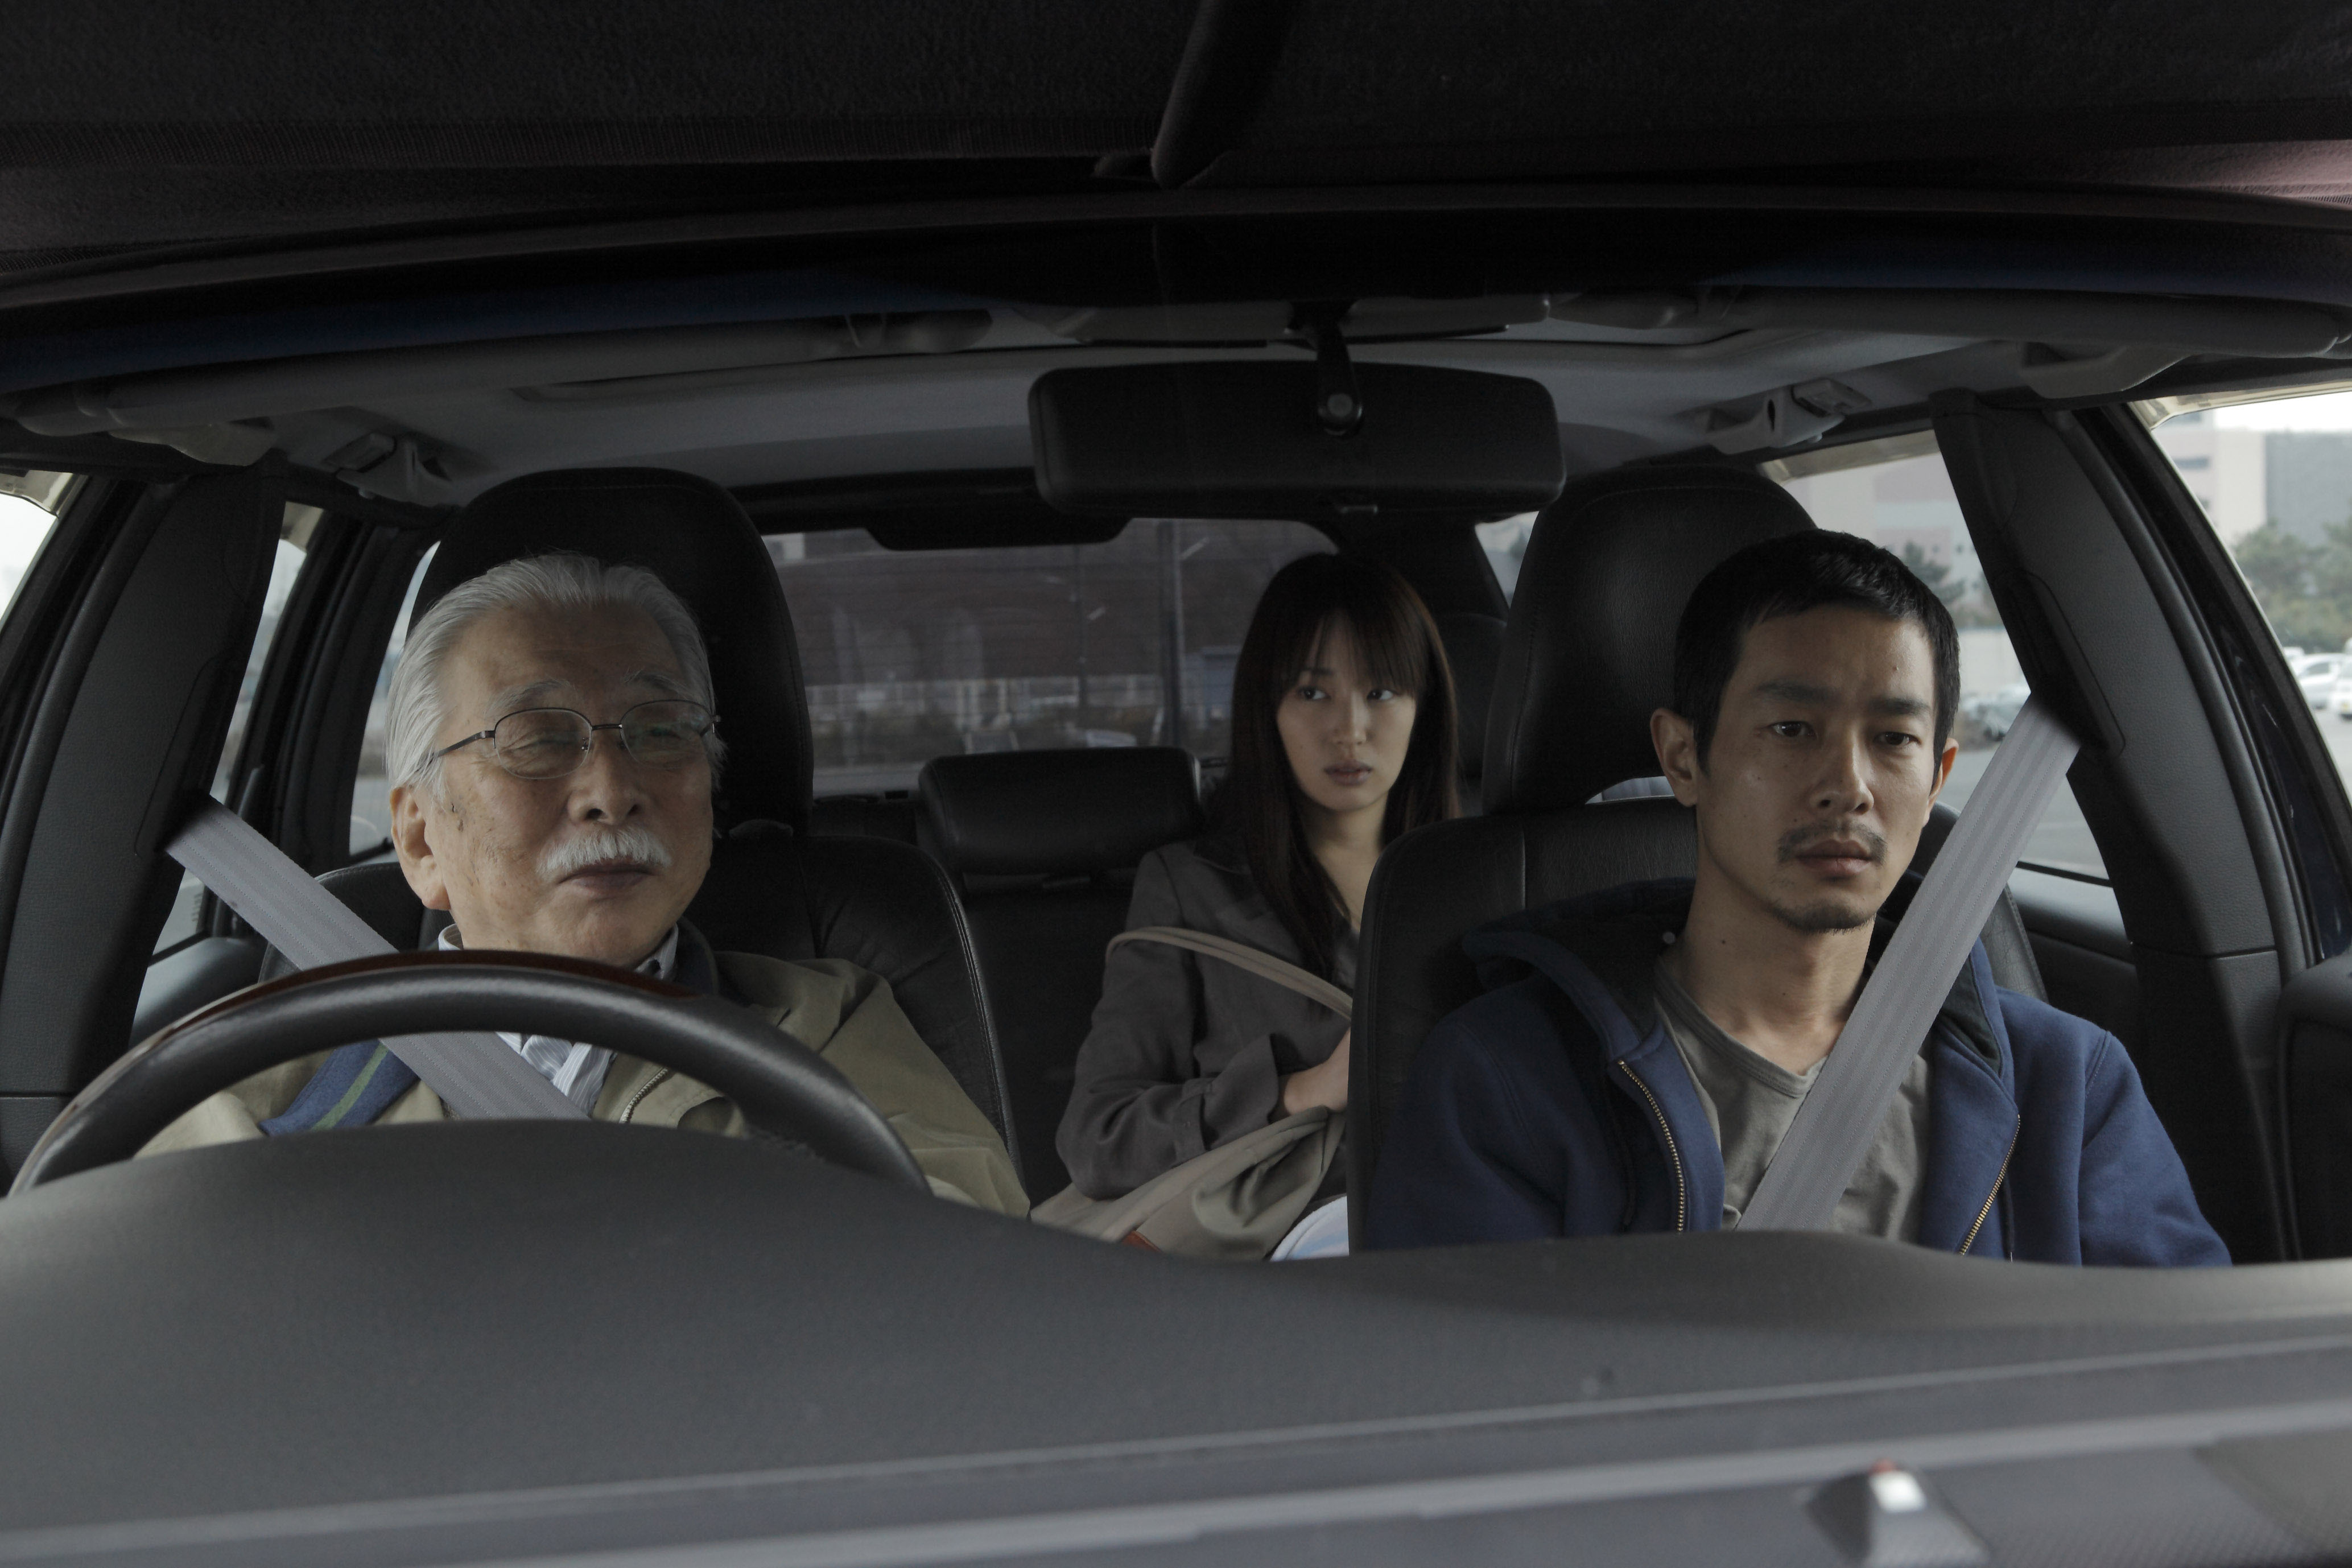 Three's a crowd: Iran's Abbas Kiarostami directs a Japanese cast in 'Like Someone in Love,' about a call girl (Rin Takanashi), her jealous boyfriend (Ryo Kase) and the elderly patron (Tadashi Okuno) who takes her under his wing. | © mk2/eurospace